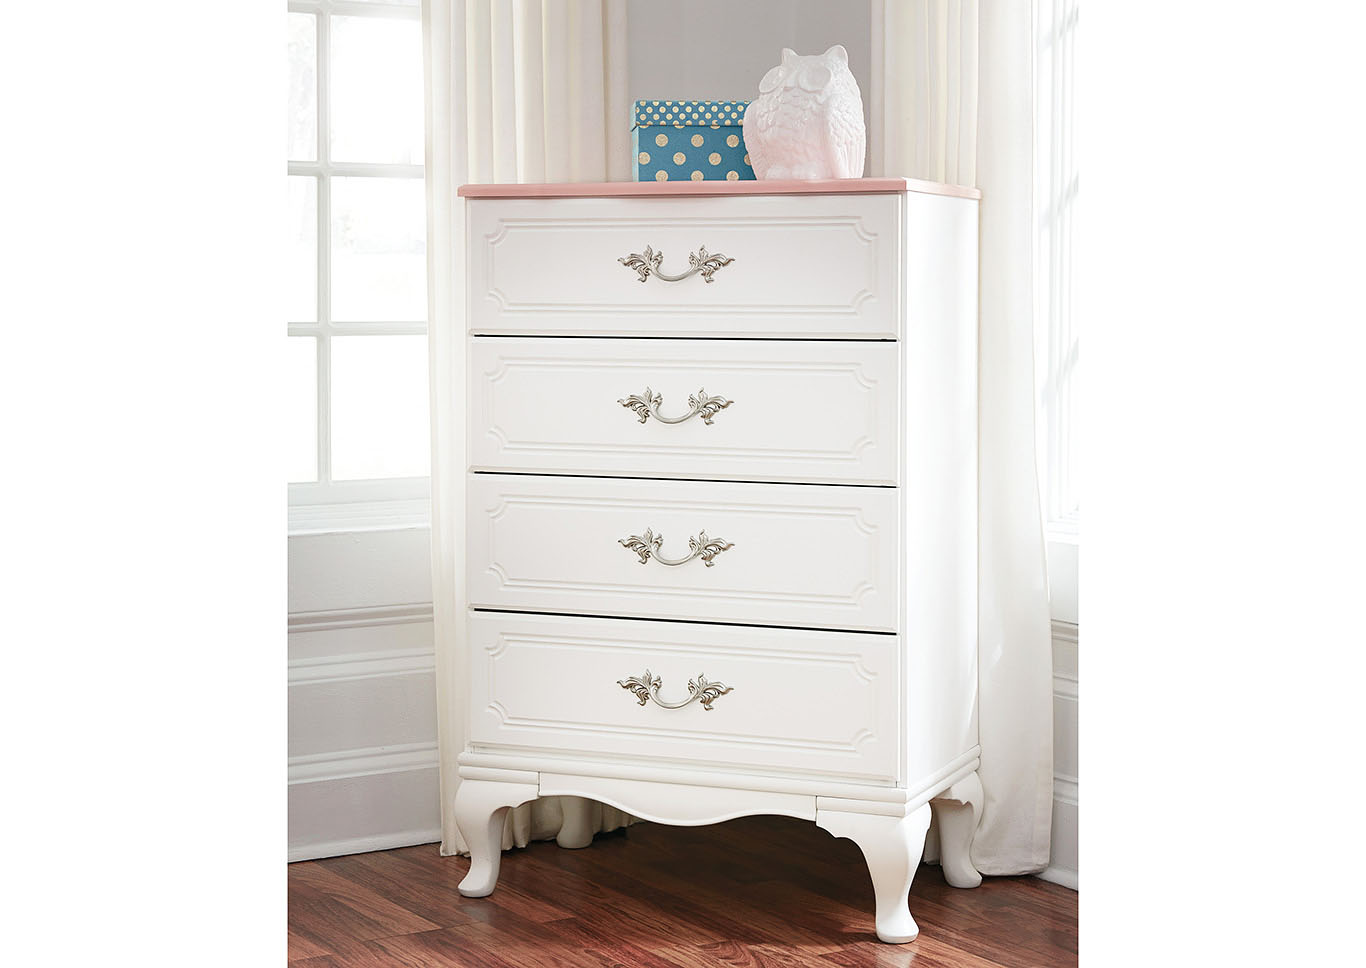 Laddi White/Pink Four Drawer Chest,Signature Design By Ashley